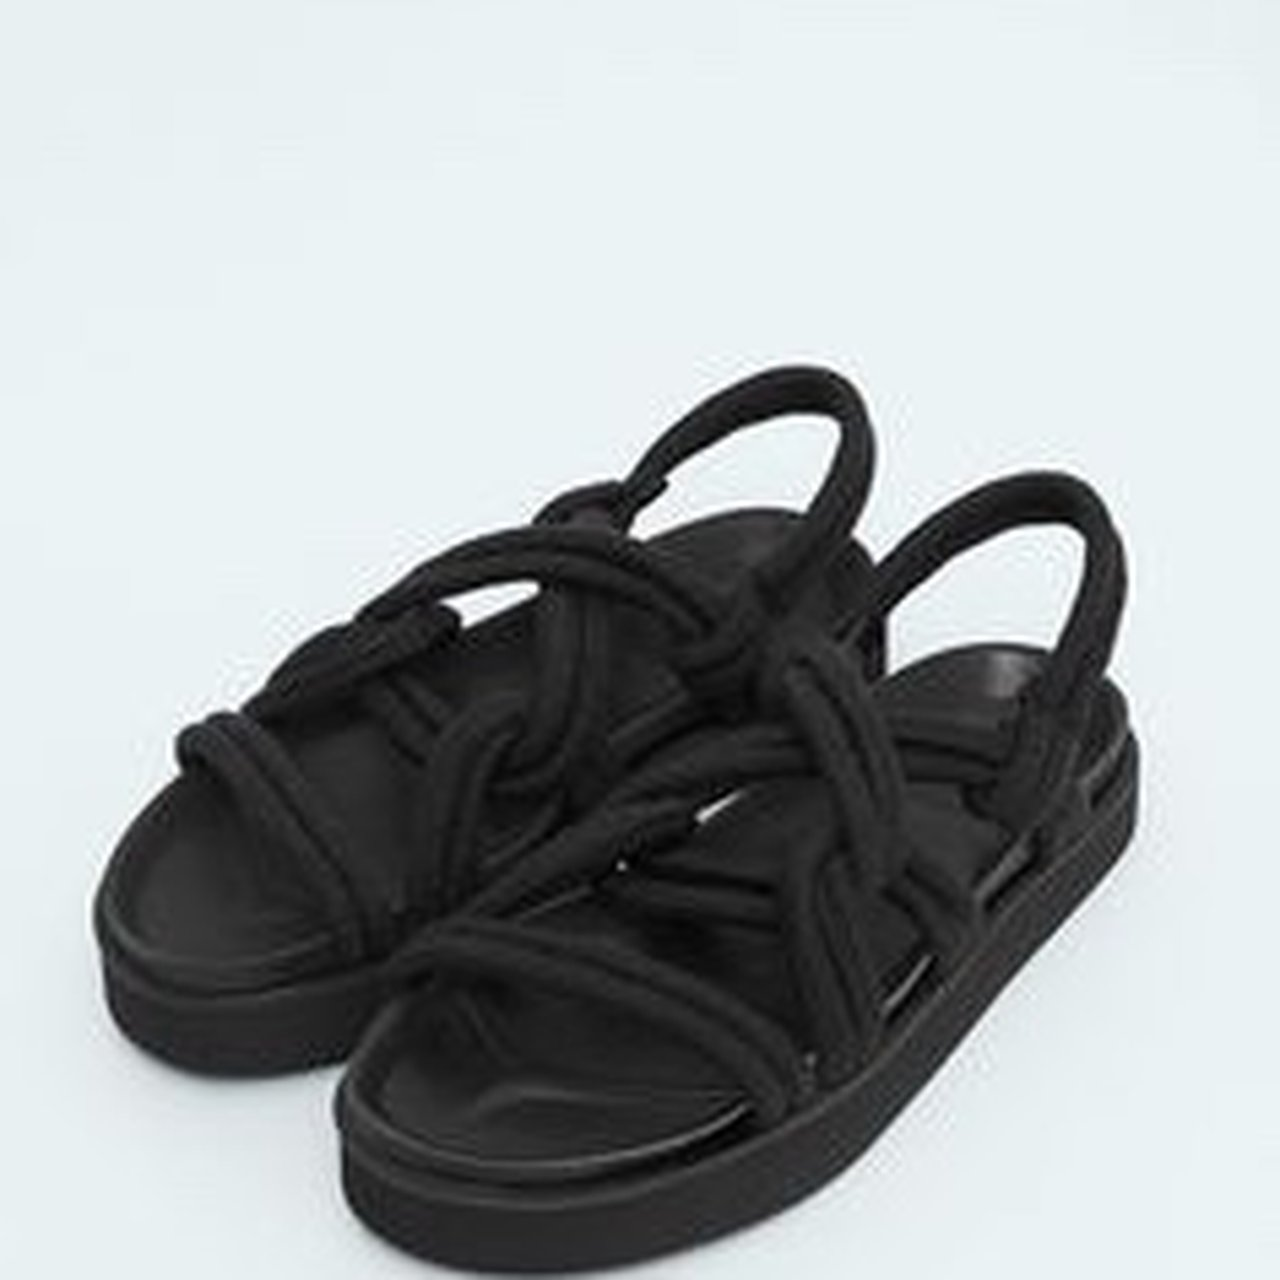 3519f8be021 REPOP! Black mango rope sandals. Think they re called cord 6 - Depop